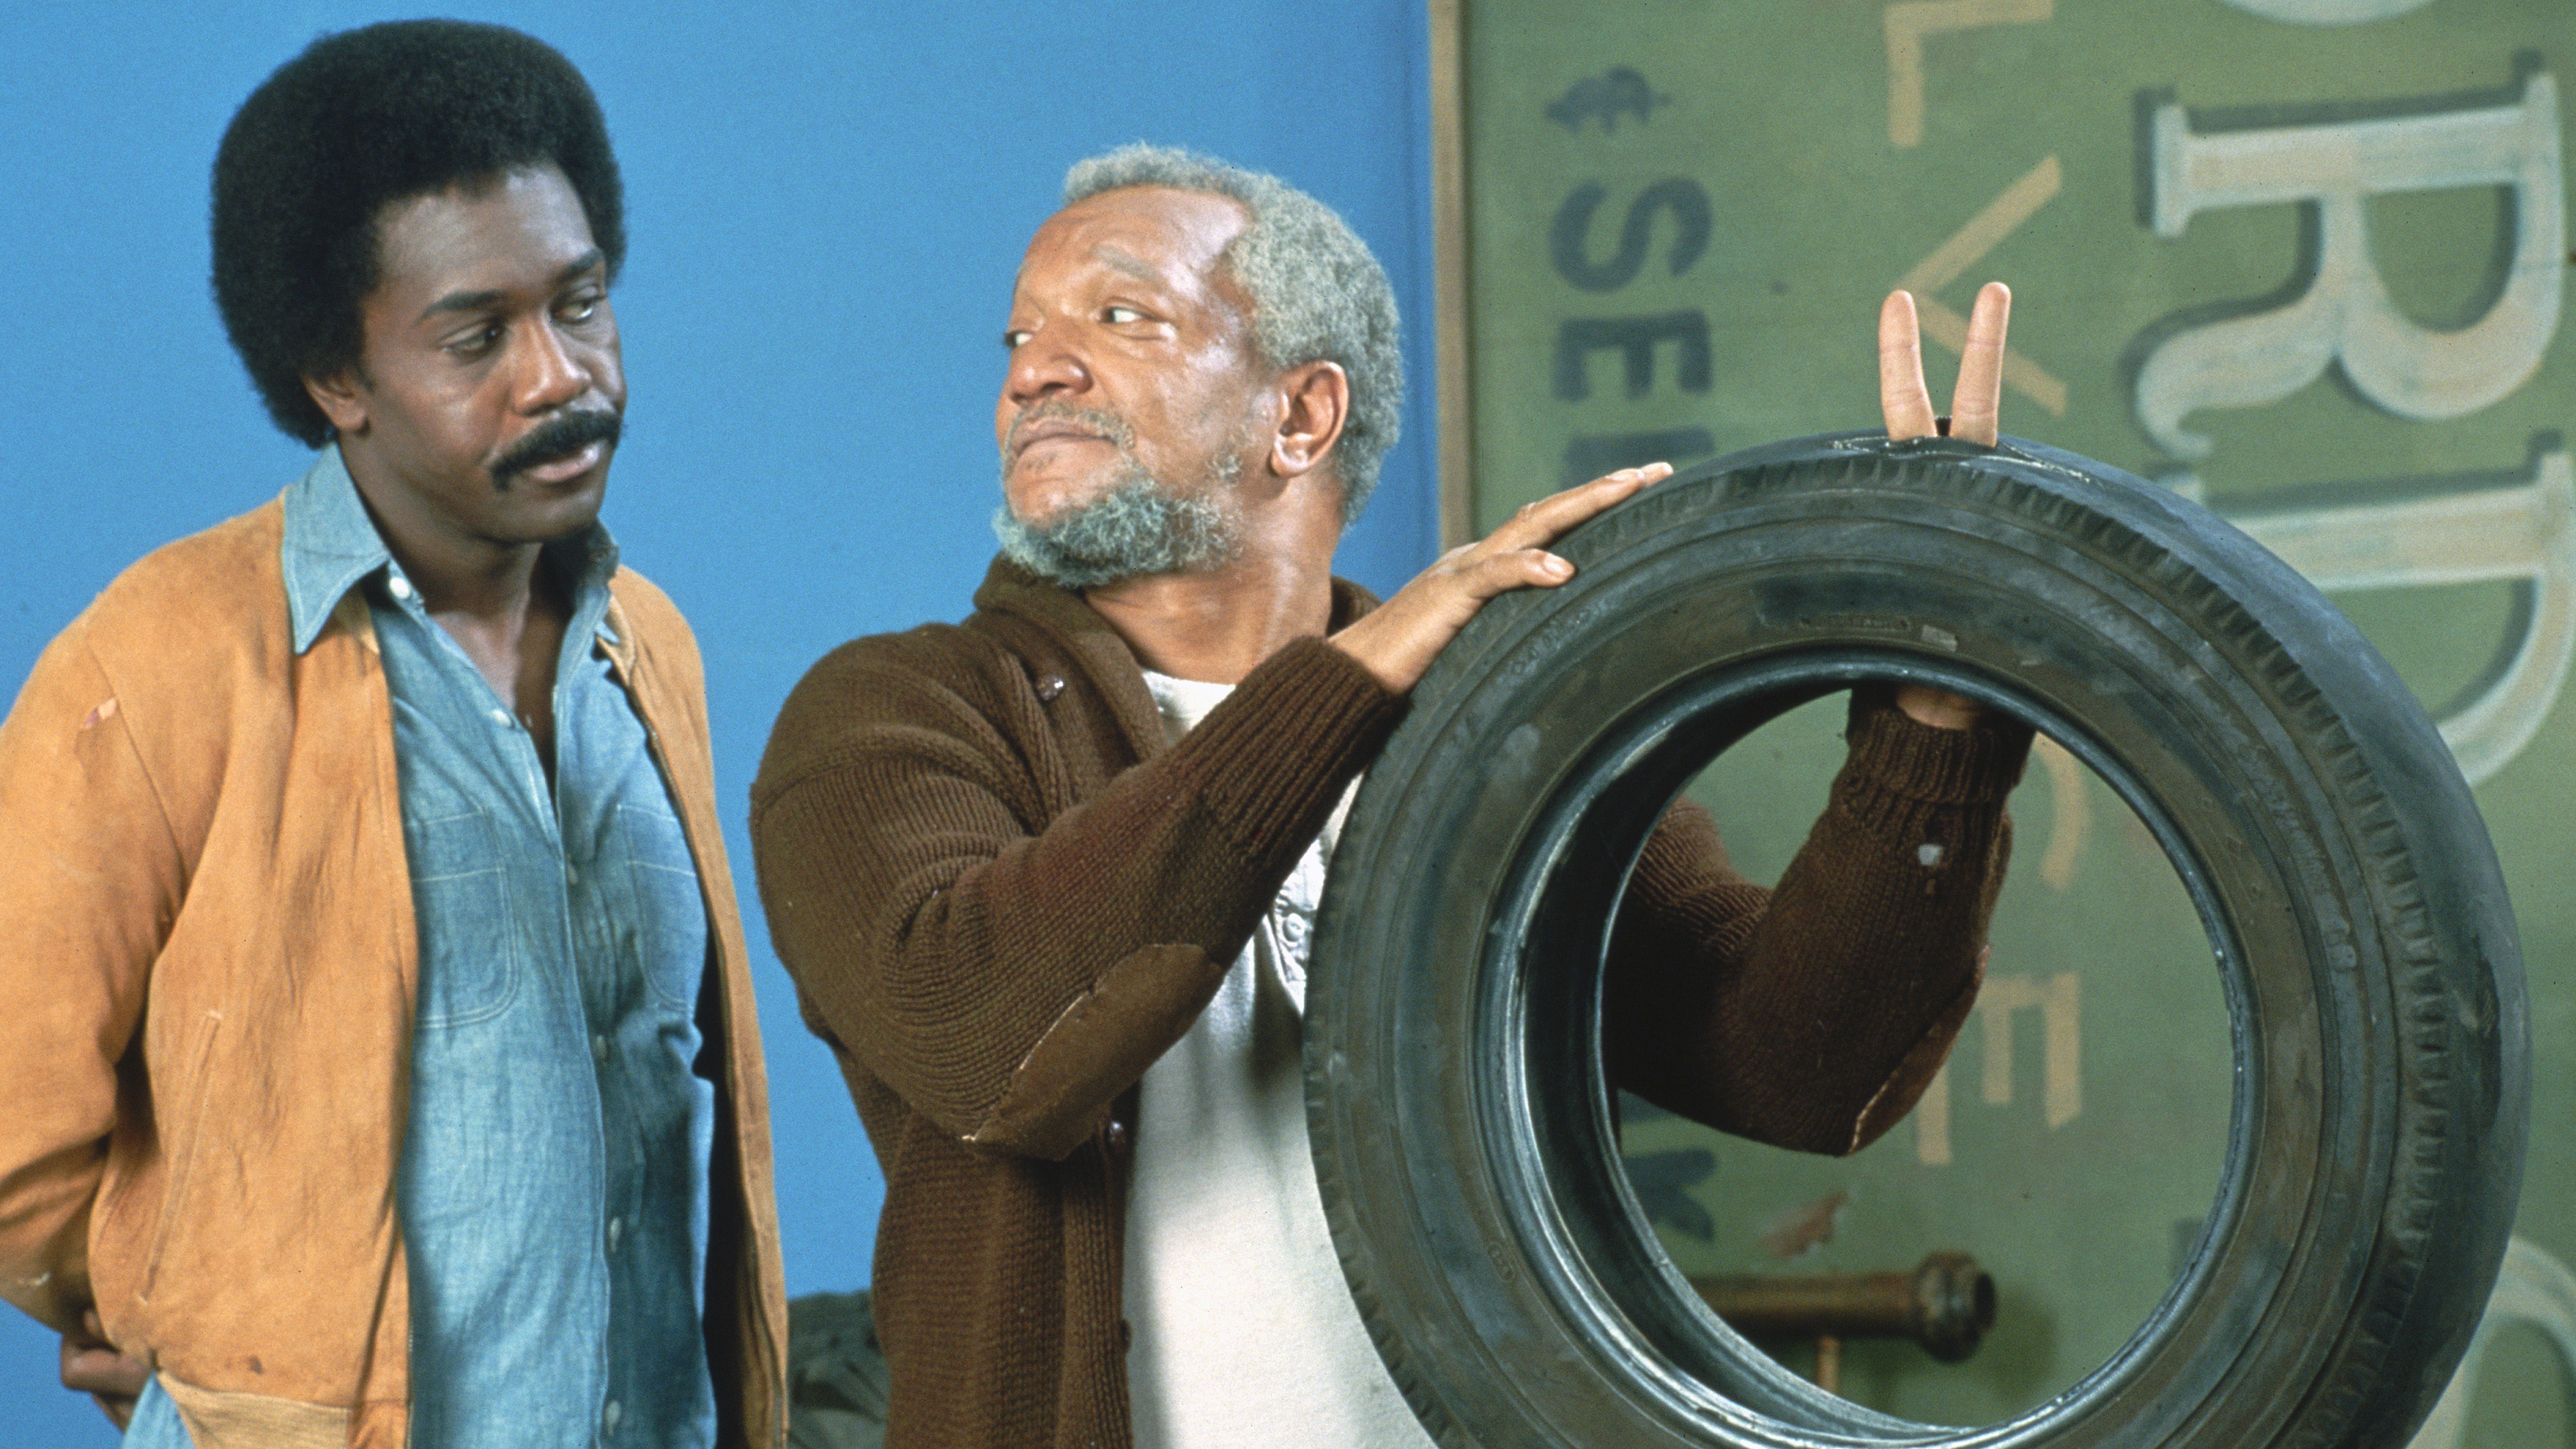 Sanford-and-Son-Trivia-question5-image